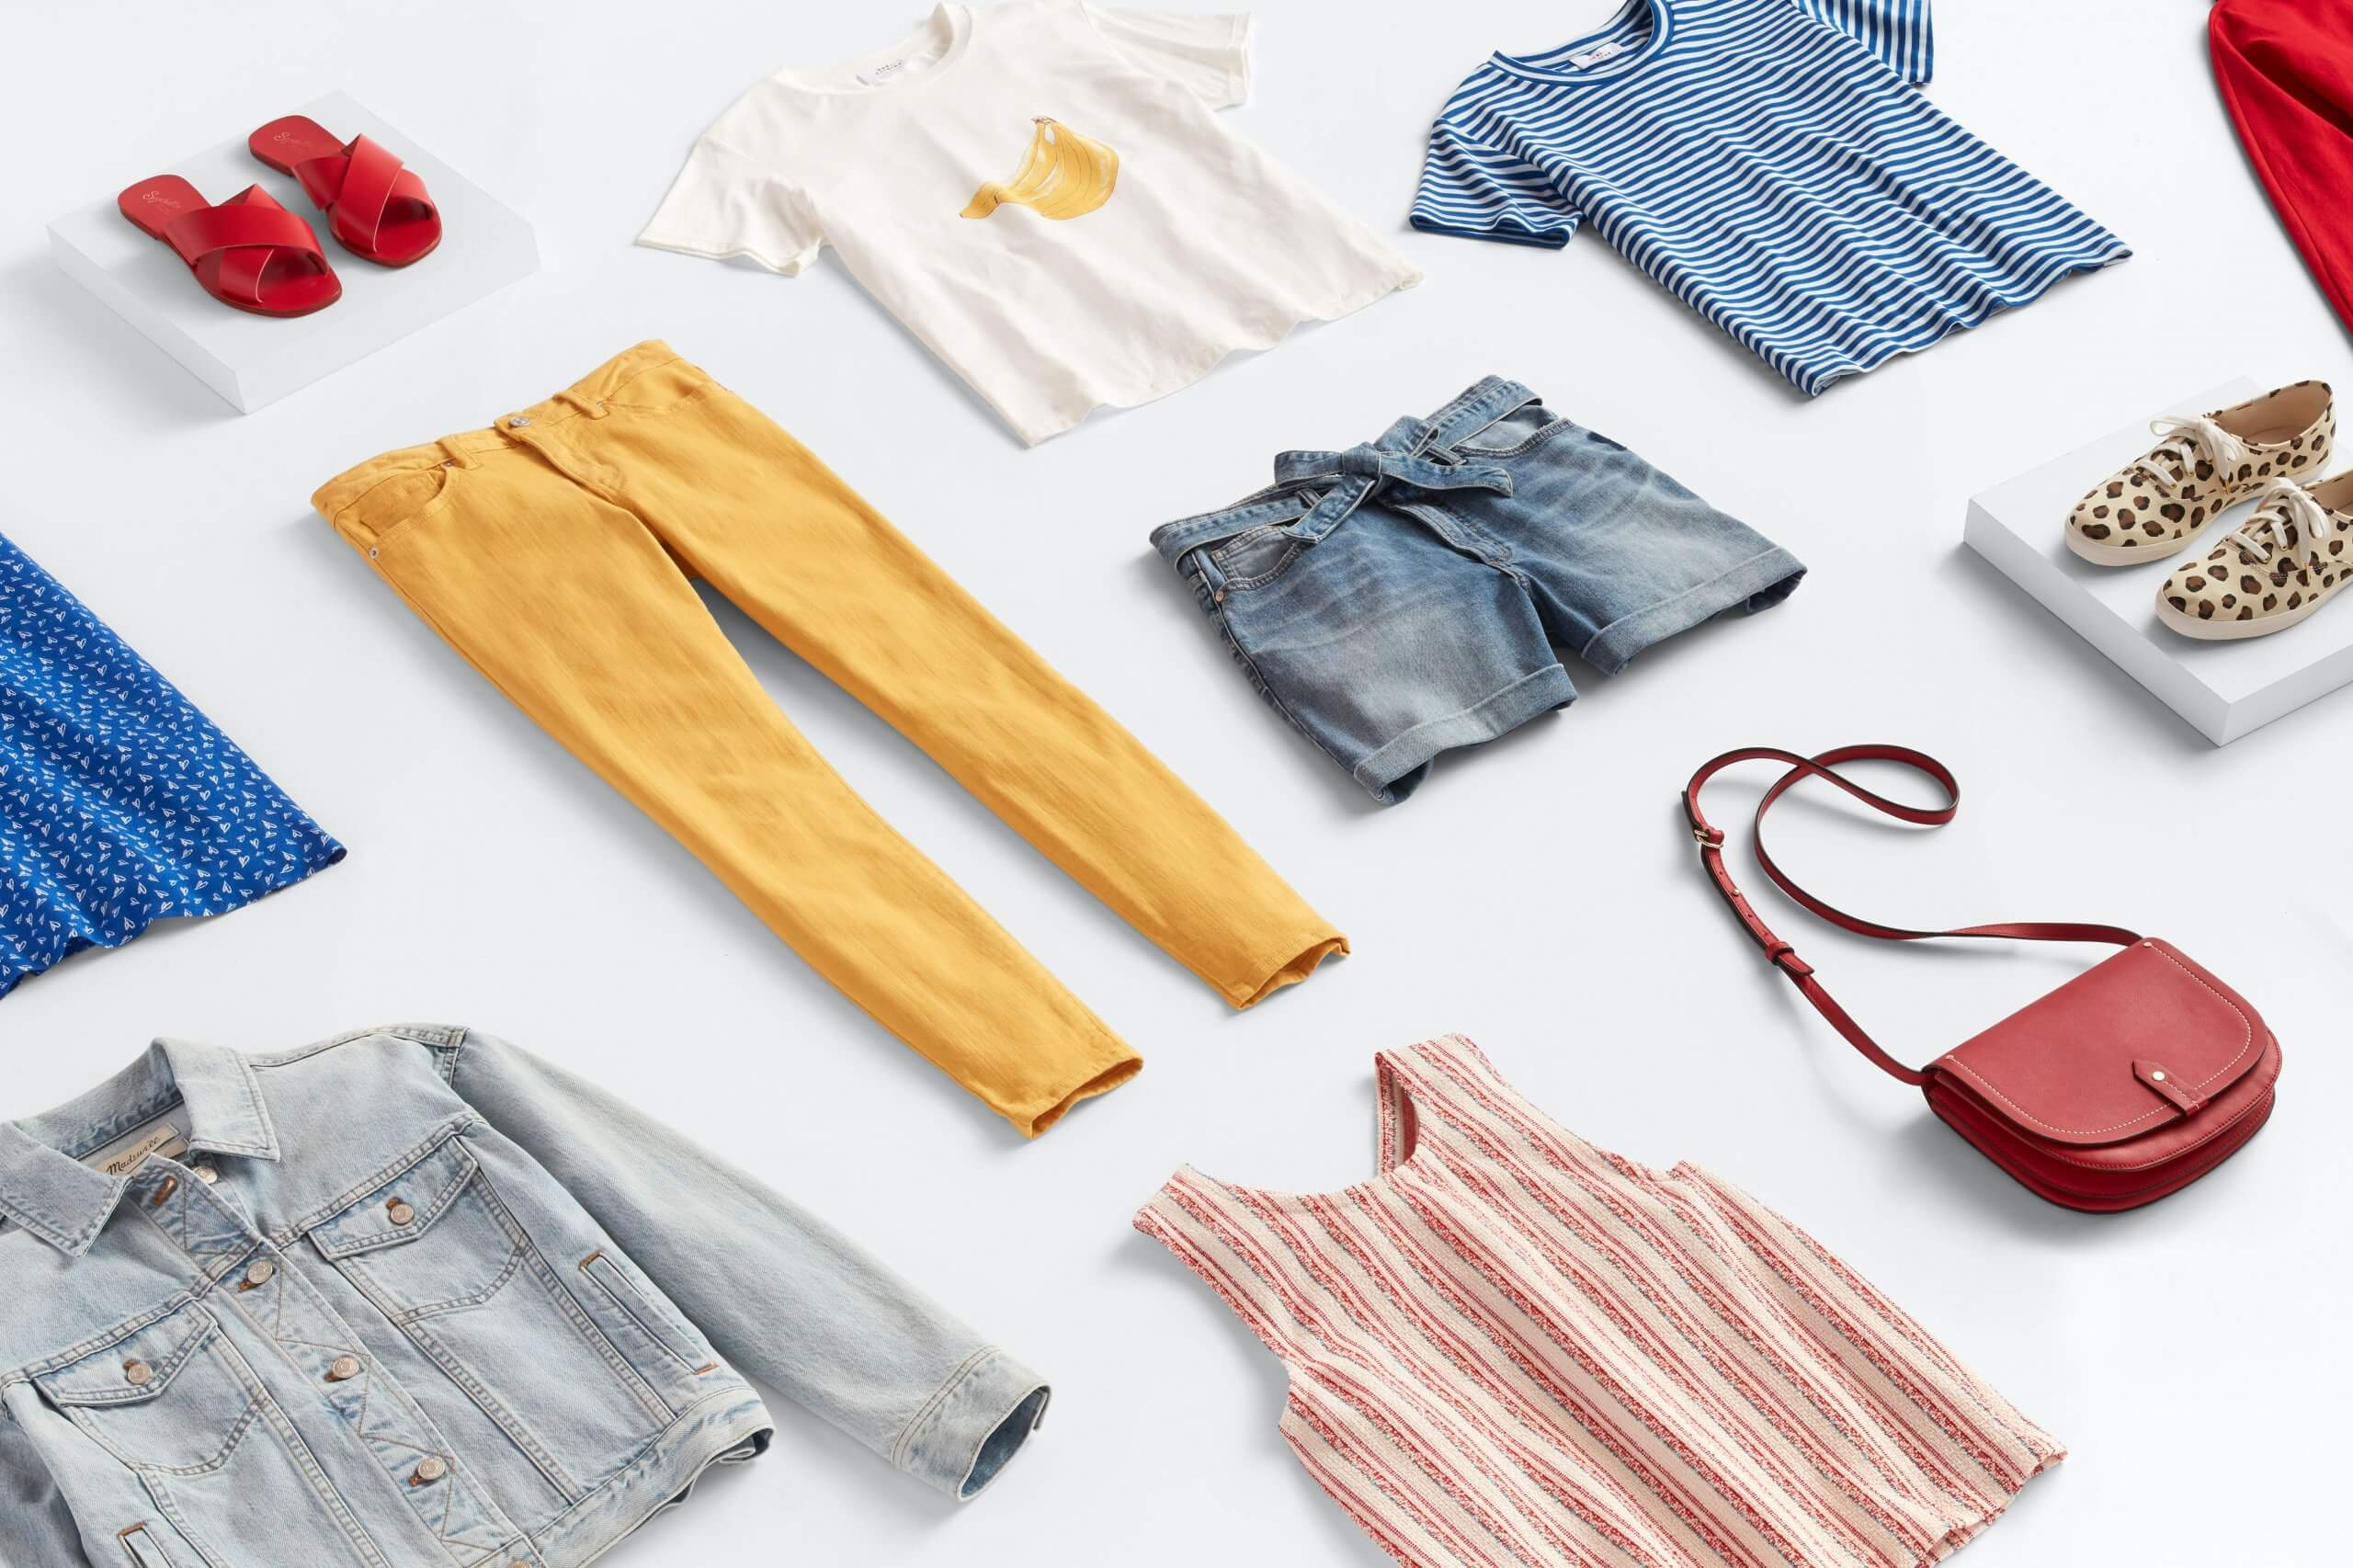 Stitch Fix women's outfit laydown featuring blue, red, yellow and white clothing and accessories.